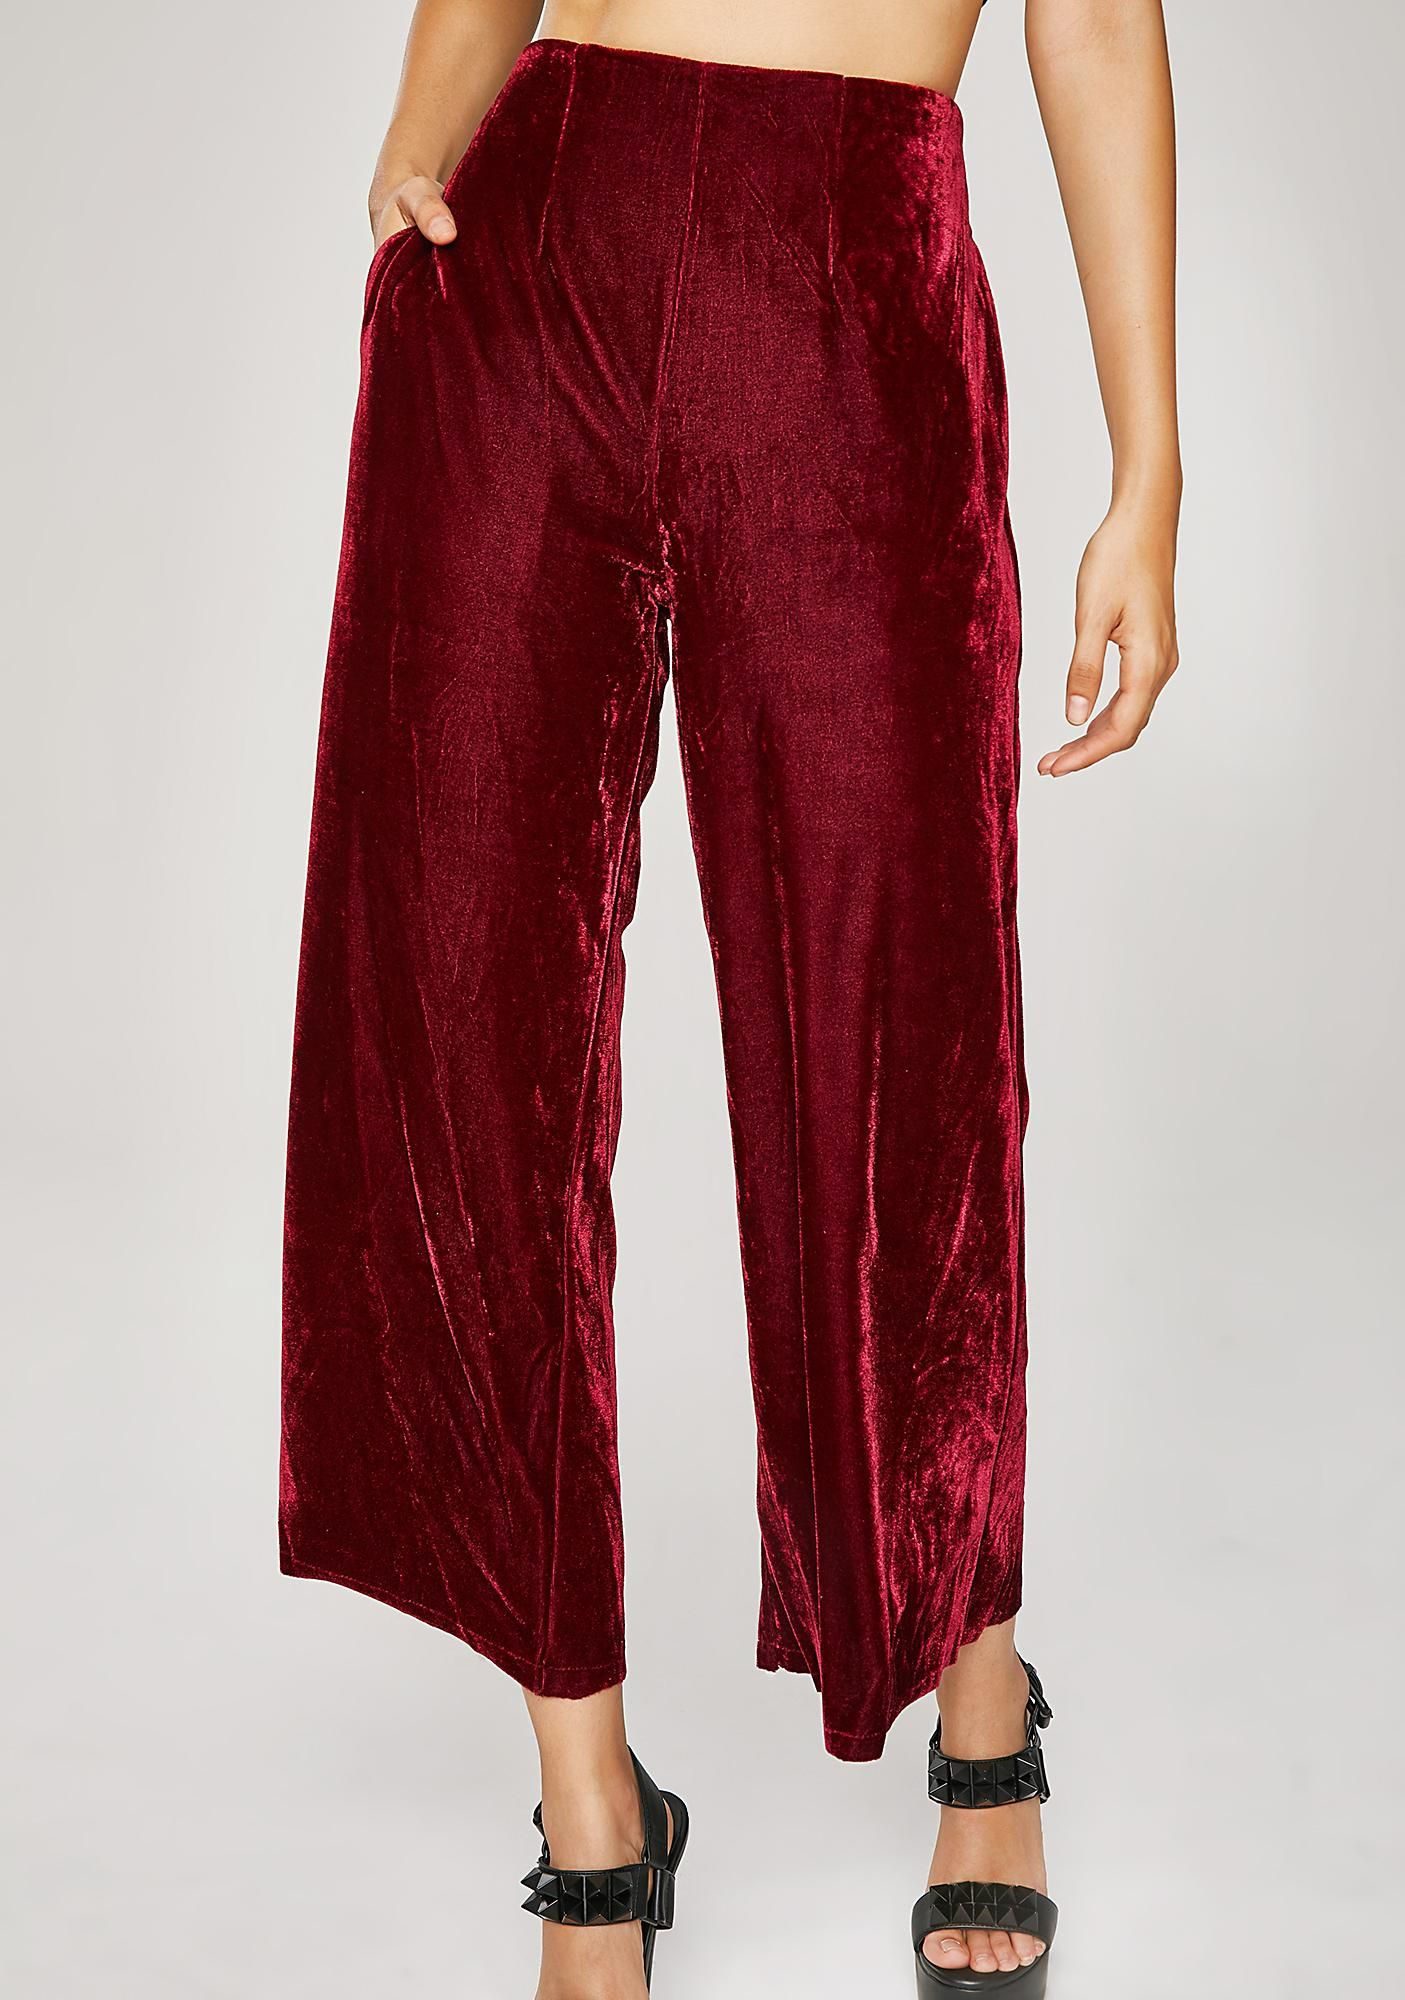 Tender Luv Velvet Culottes In 2020 Polyvore Outfits Capri Pants Outfits Red Trousers